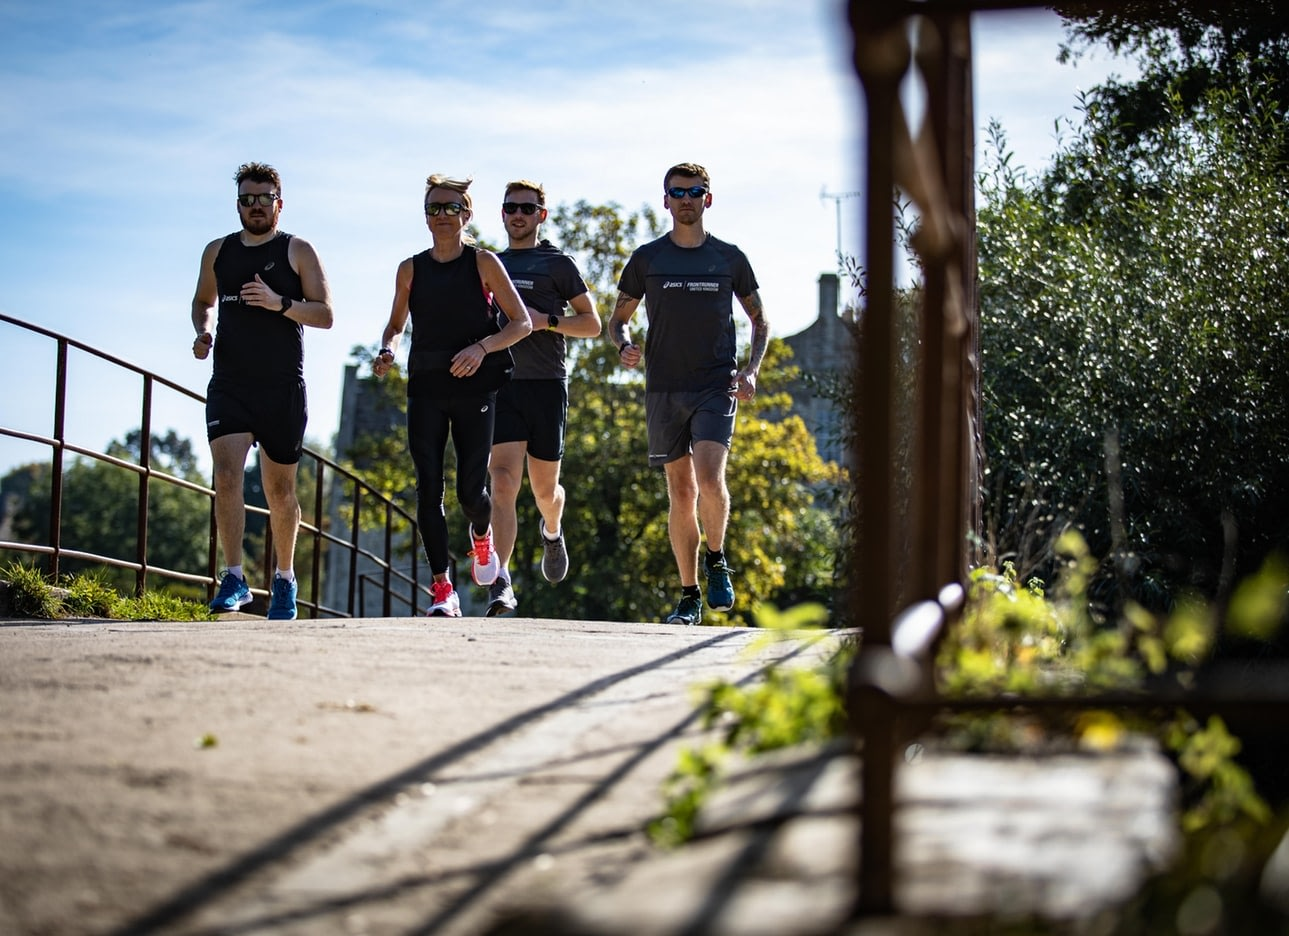 group of people running together as a gym alternative